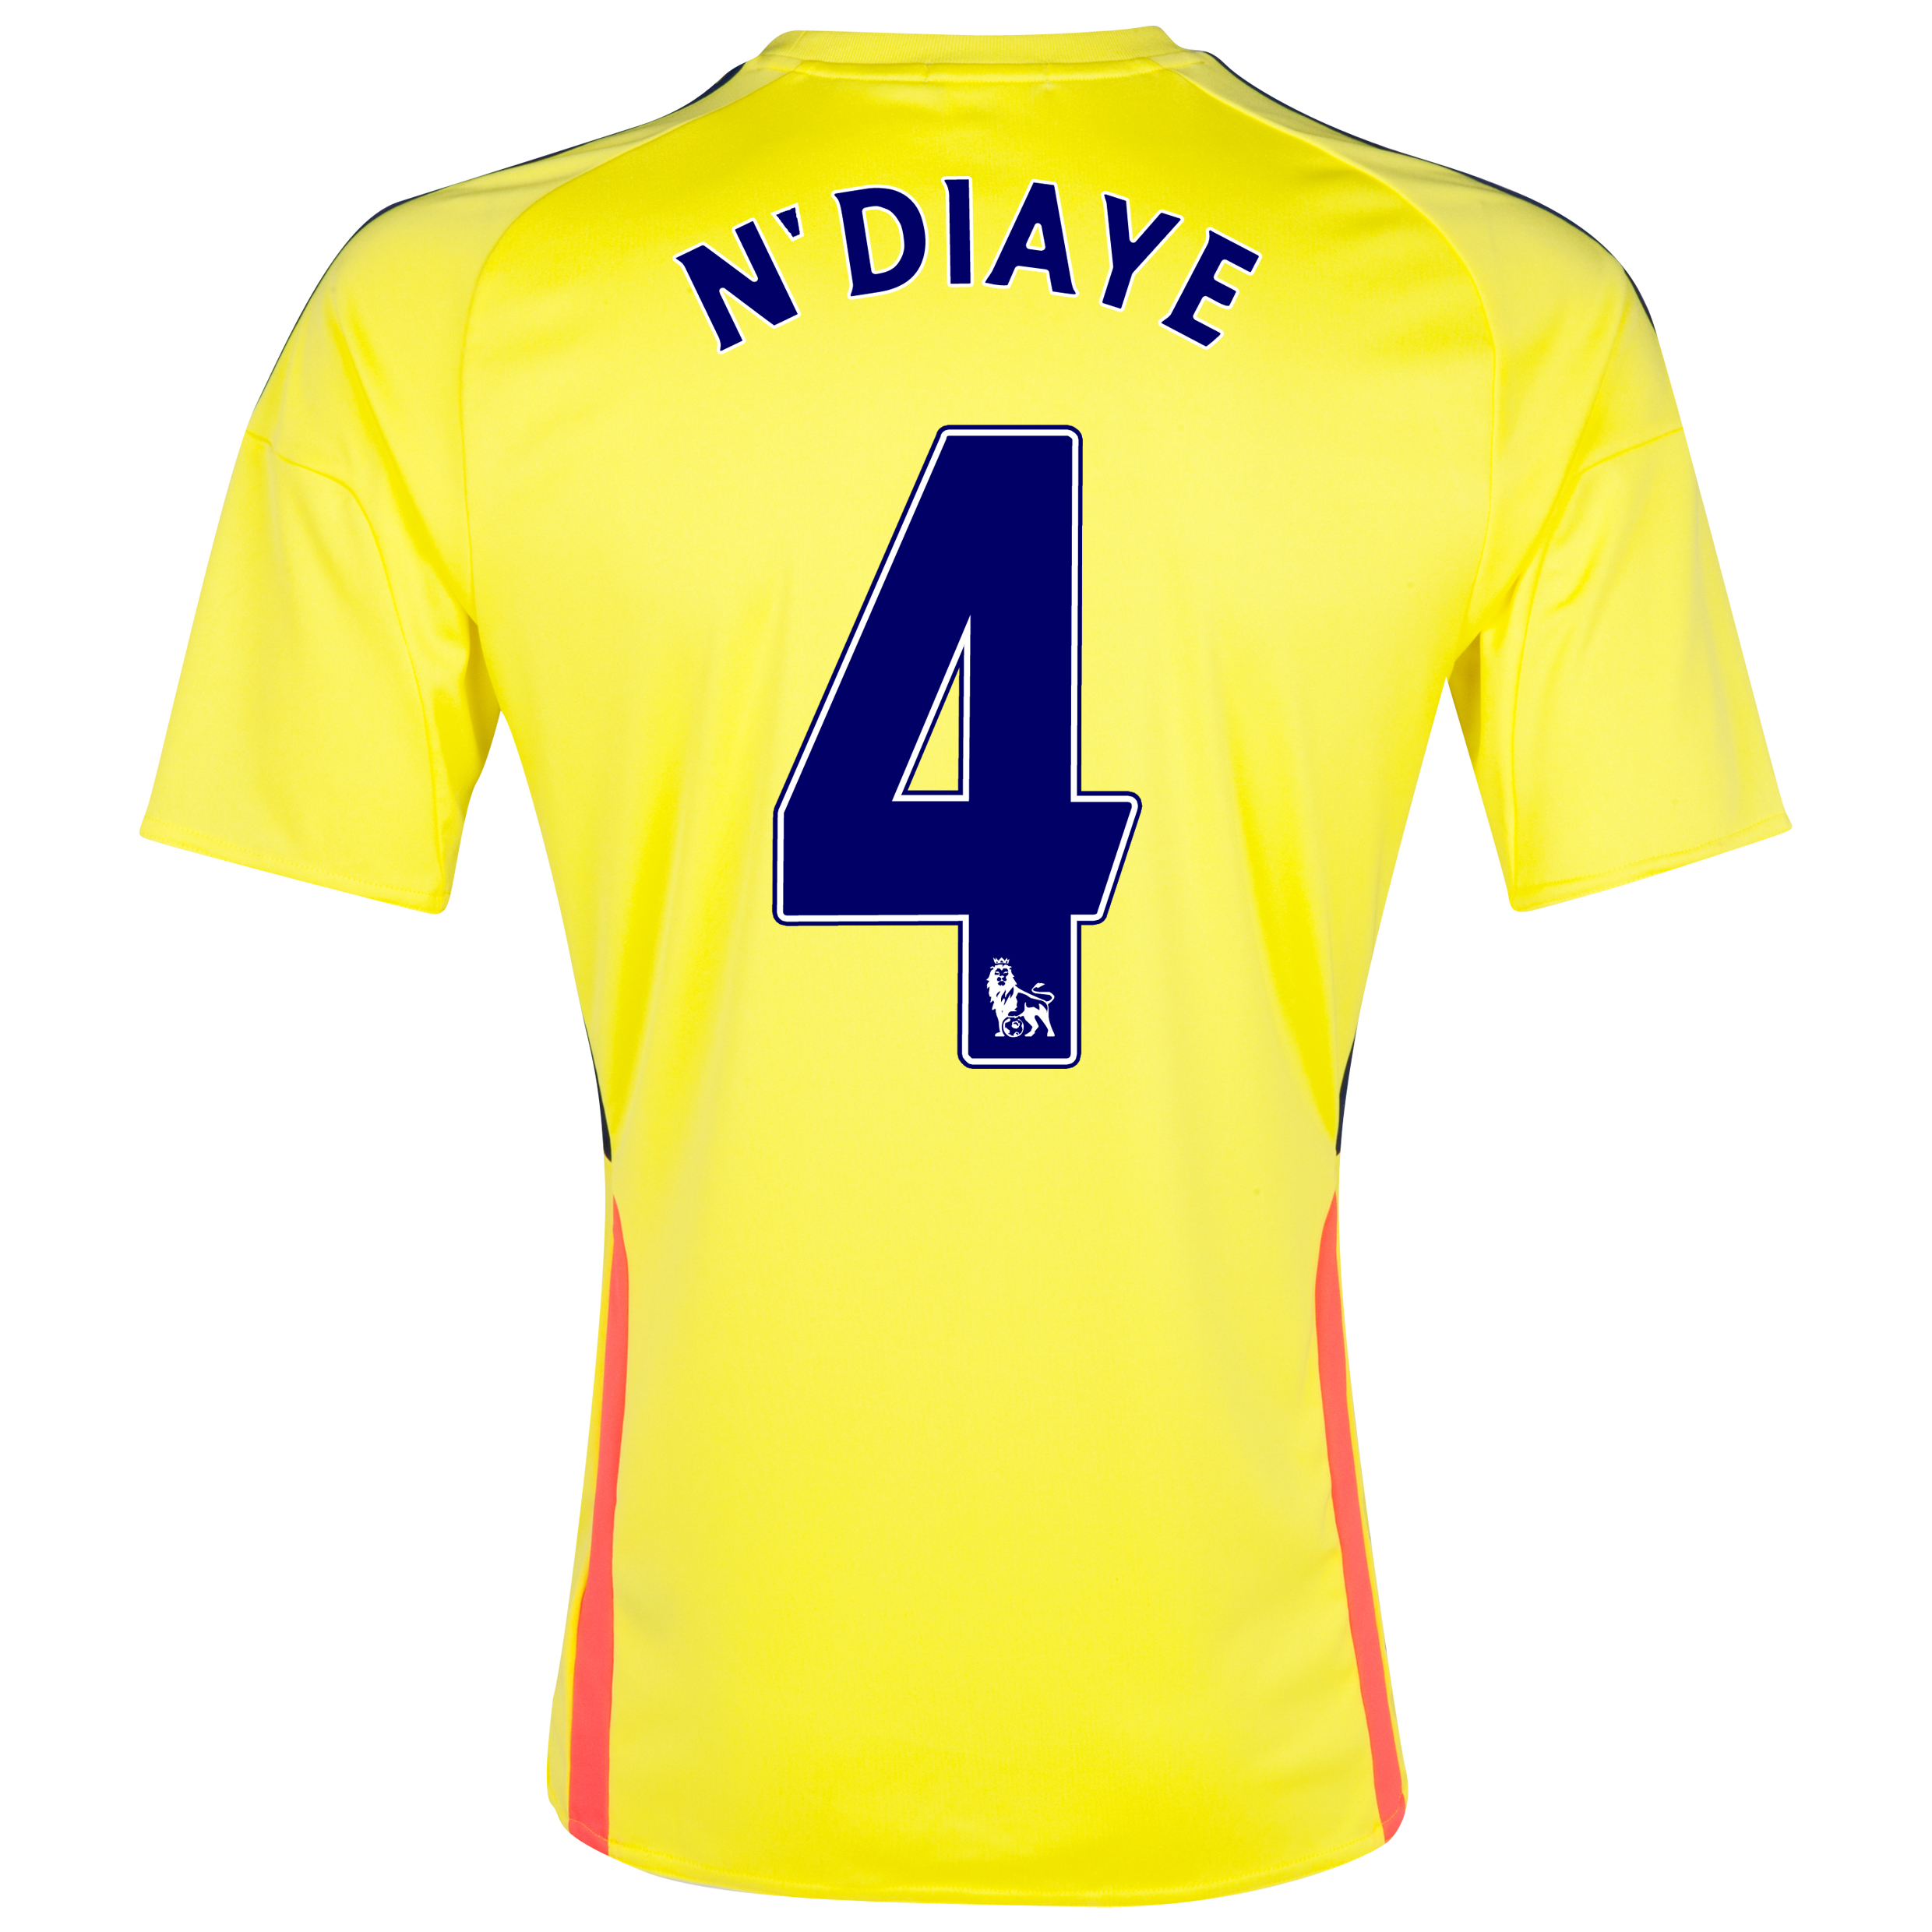 Sunderland Away Shirt 2013/14 with N'Diaye 4 printing